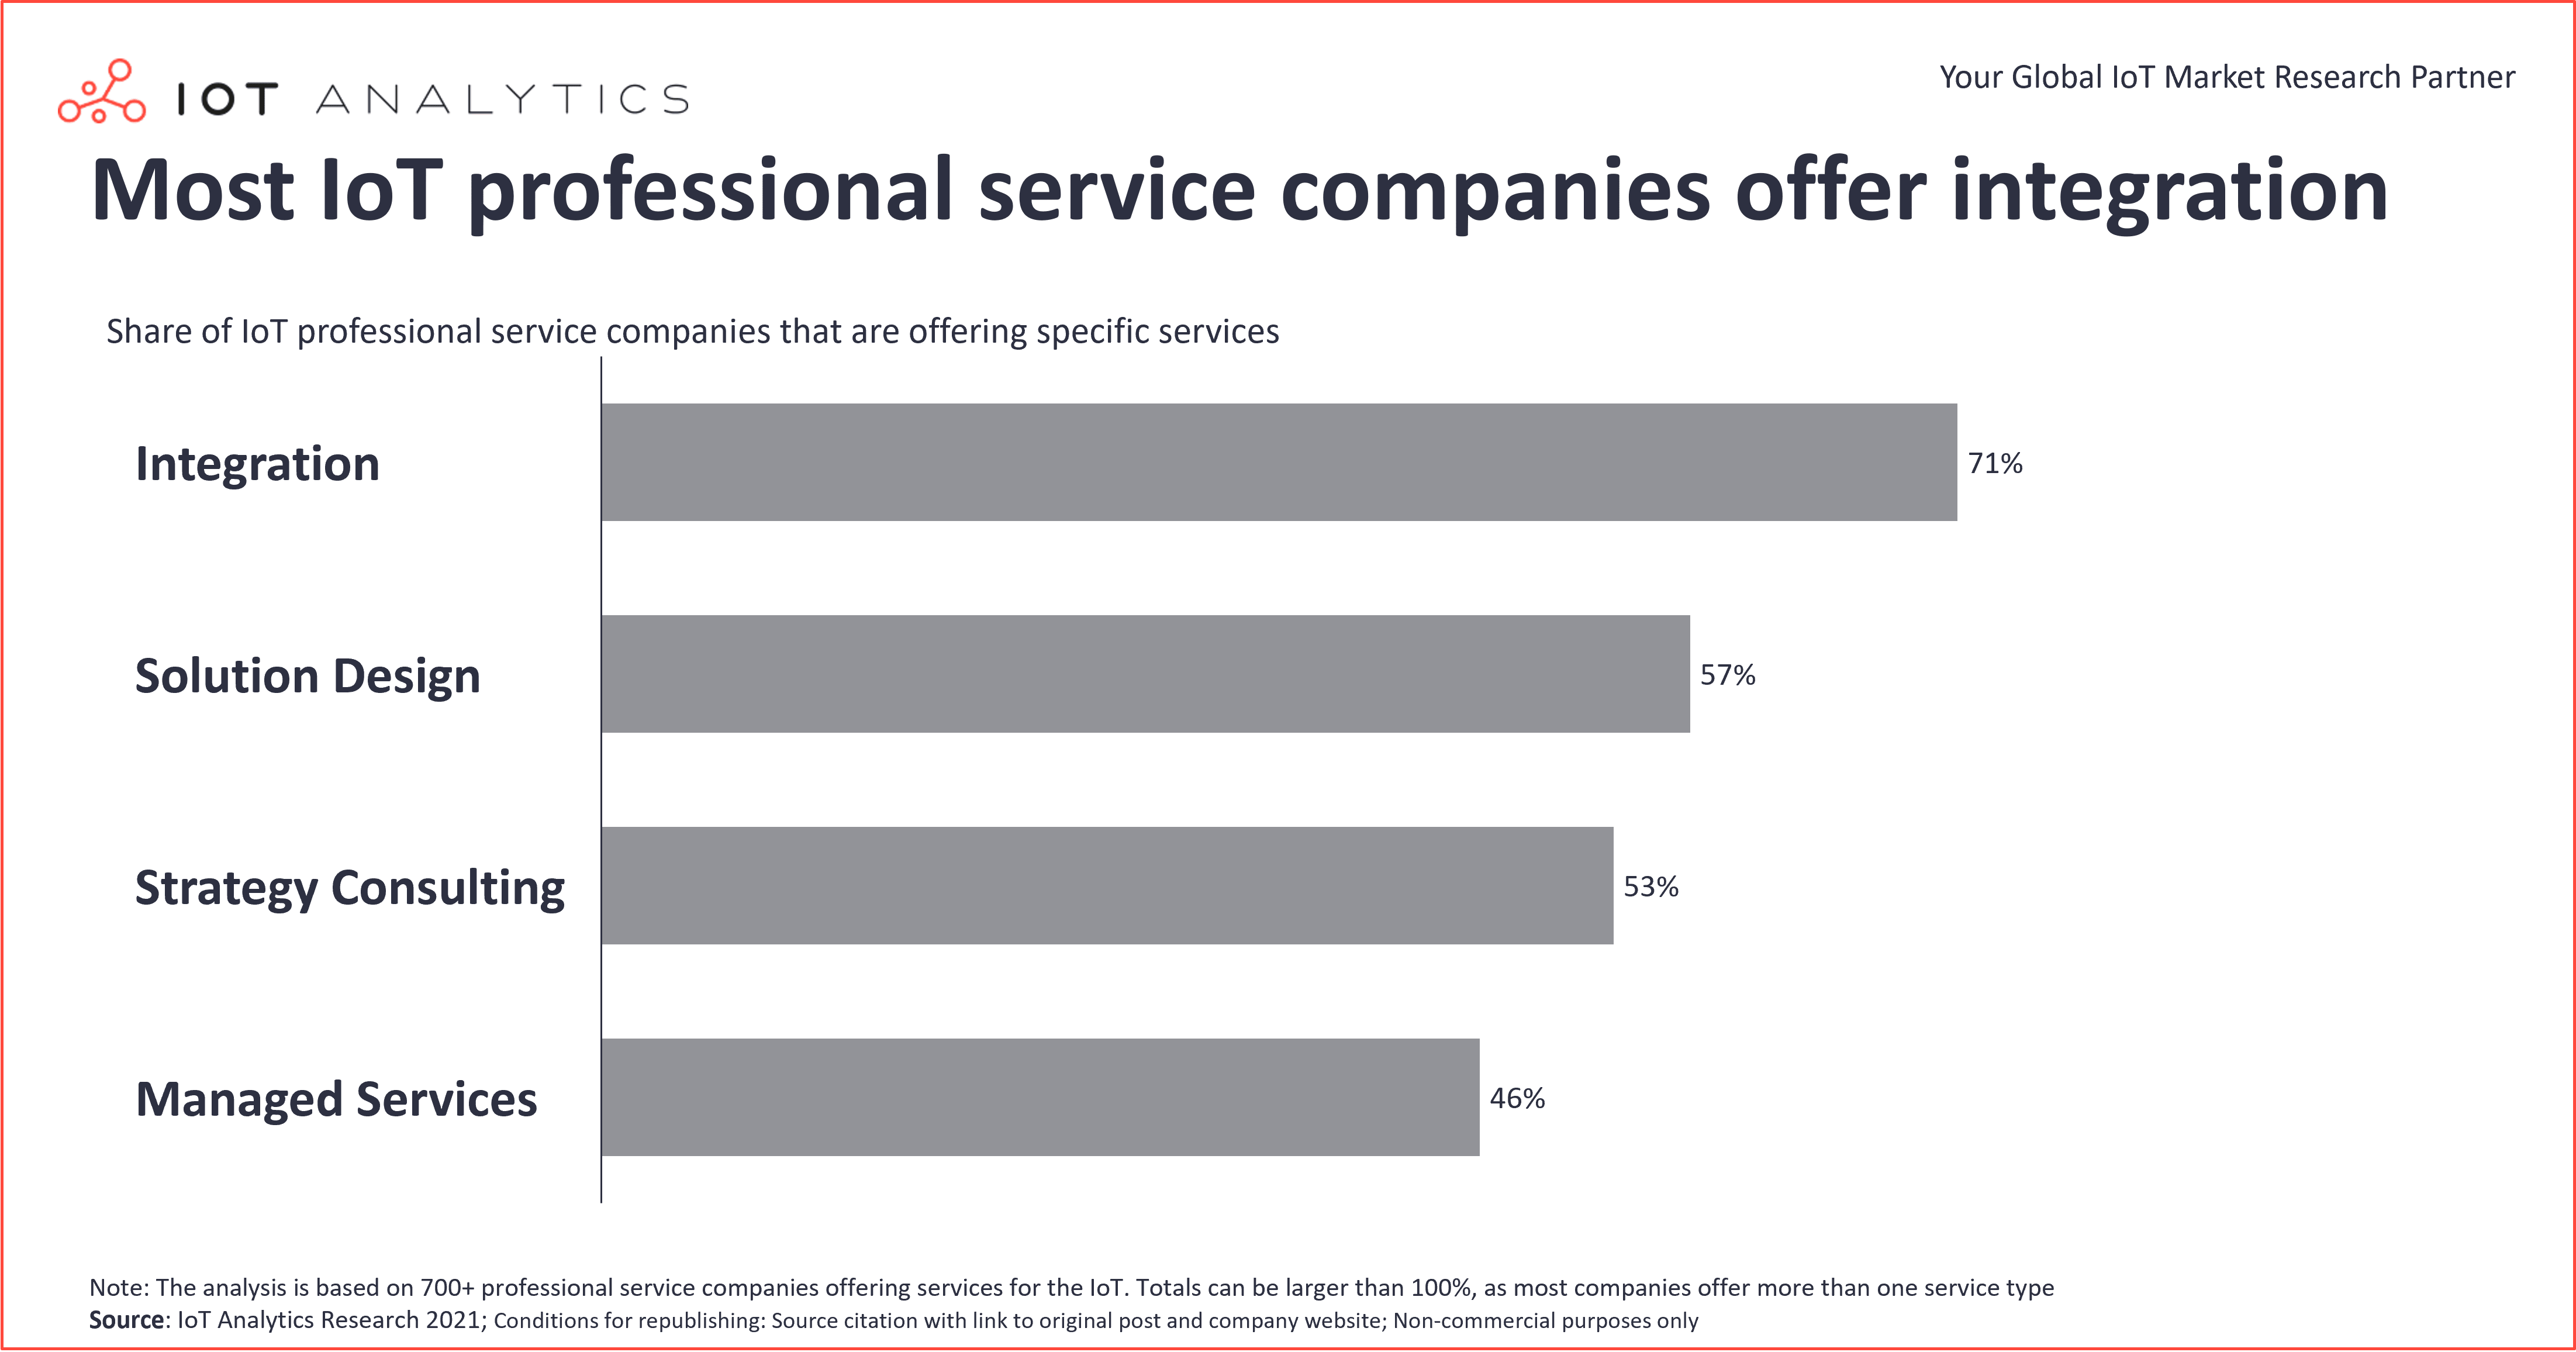 Most IoT professional service companies offer integration